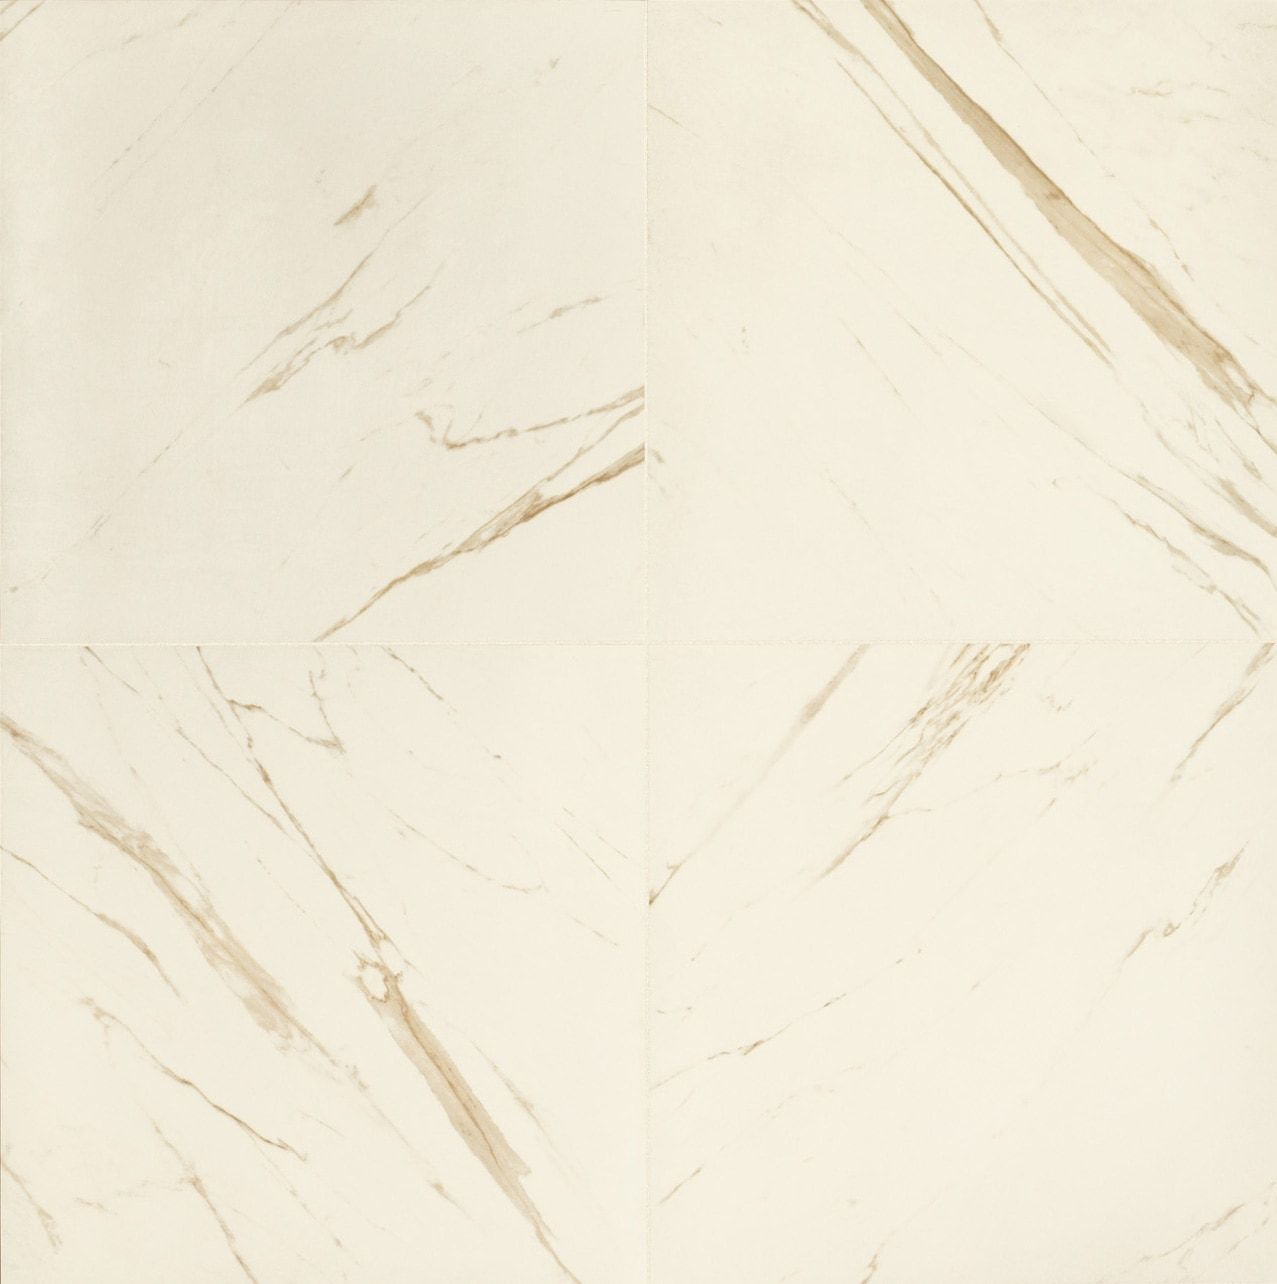 Versace Marble Bianco poliert 19-5x58-5 cm 02400310-